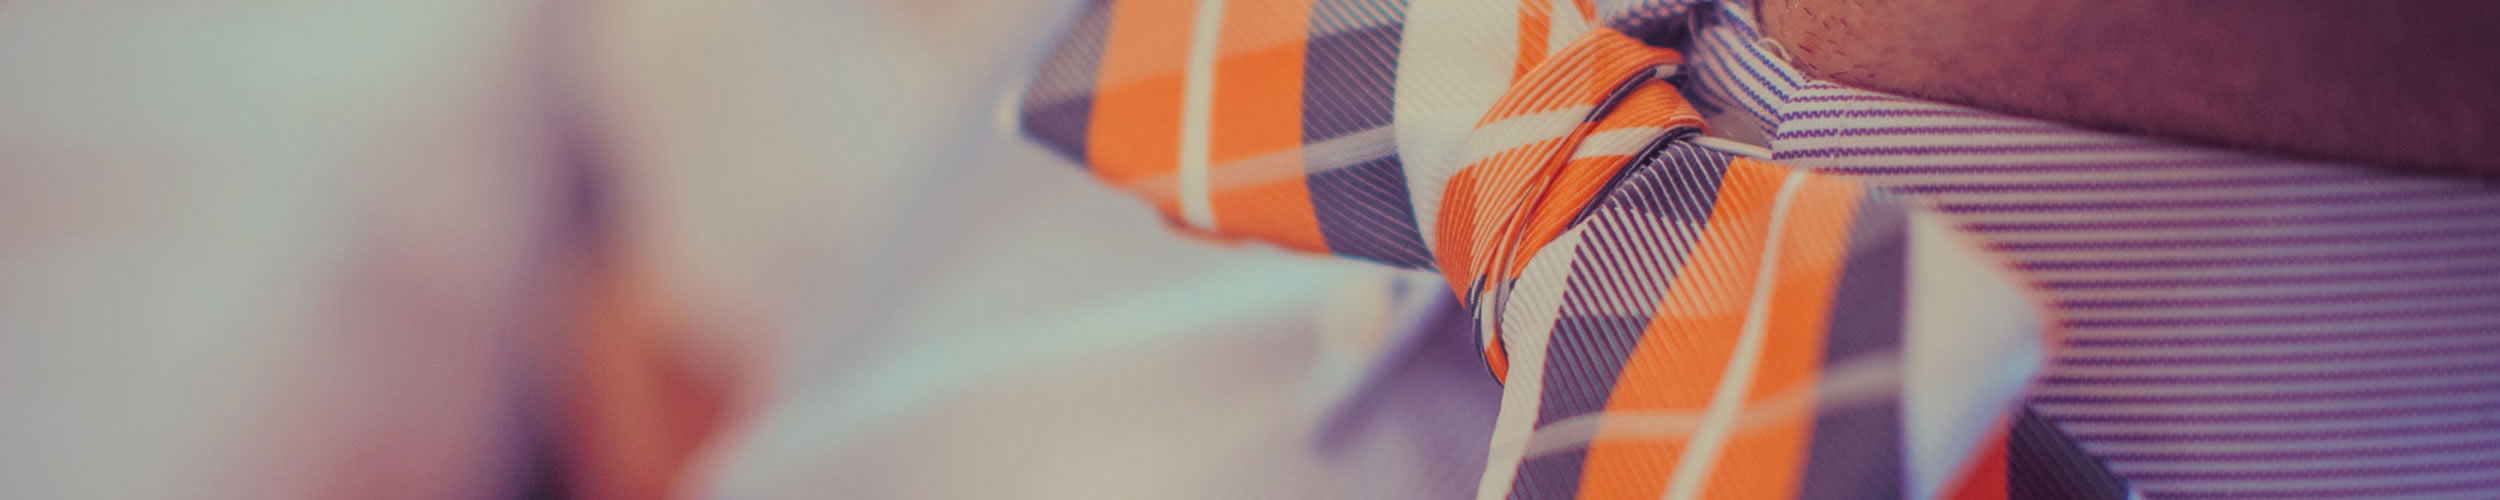 banner bow tie